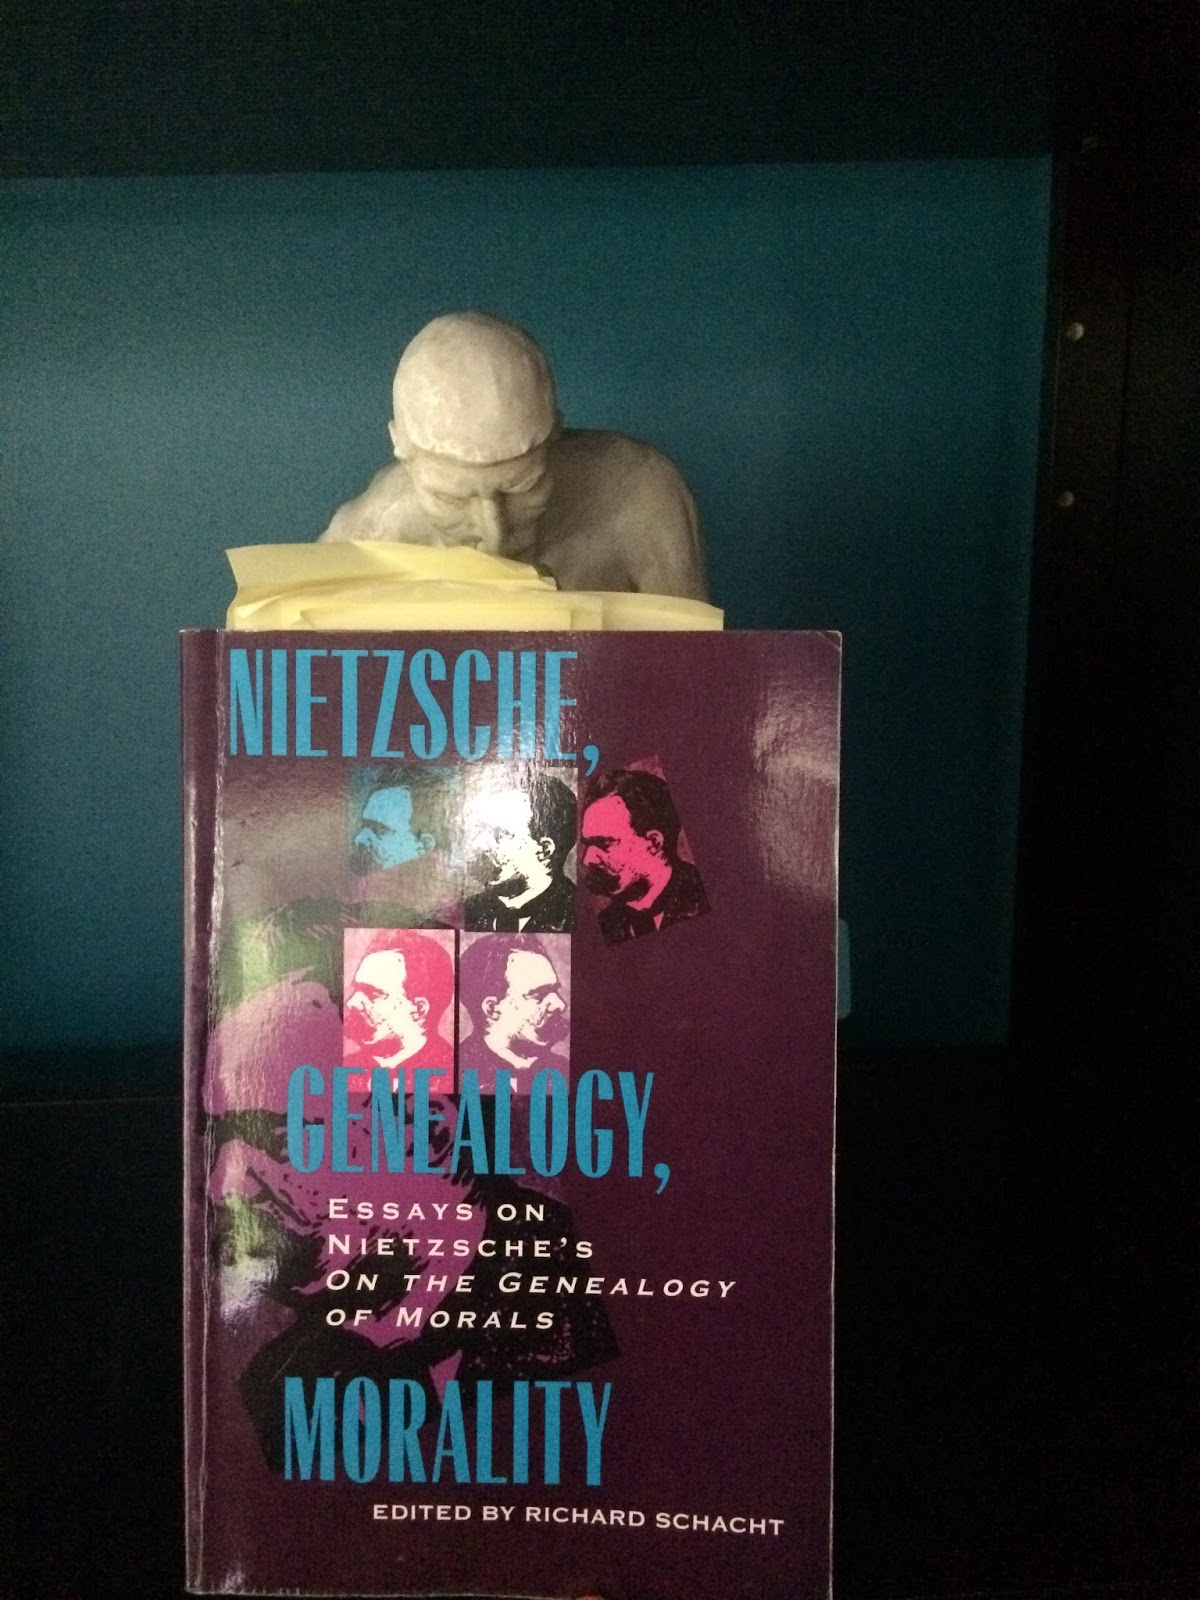 nietzsche on the genealogy of morals 2nd essay summer reading friederich nietzsche s on the genealogy of morals hooliganism in soccer essays